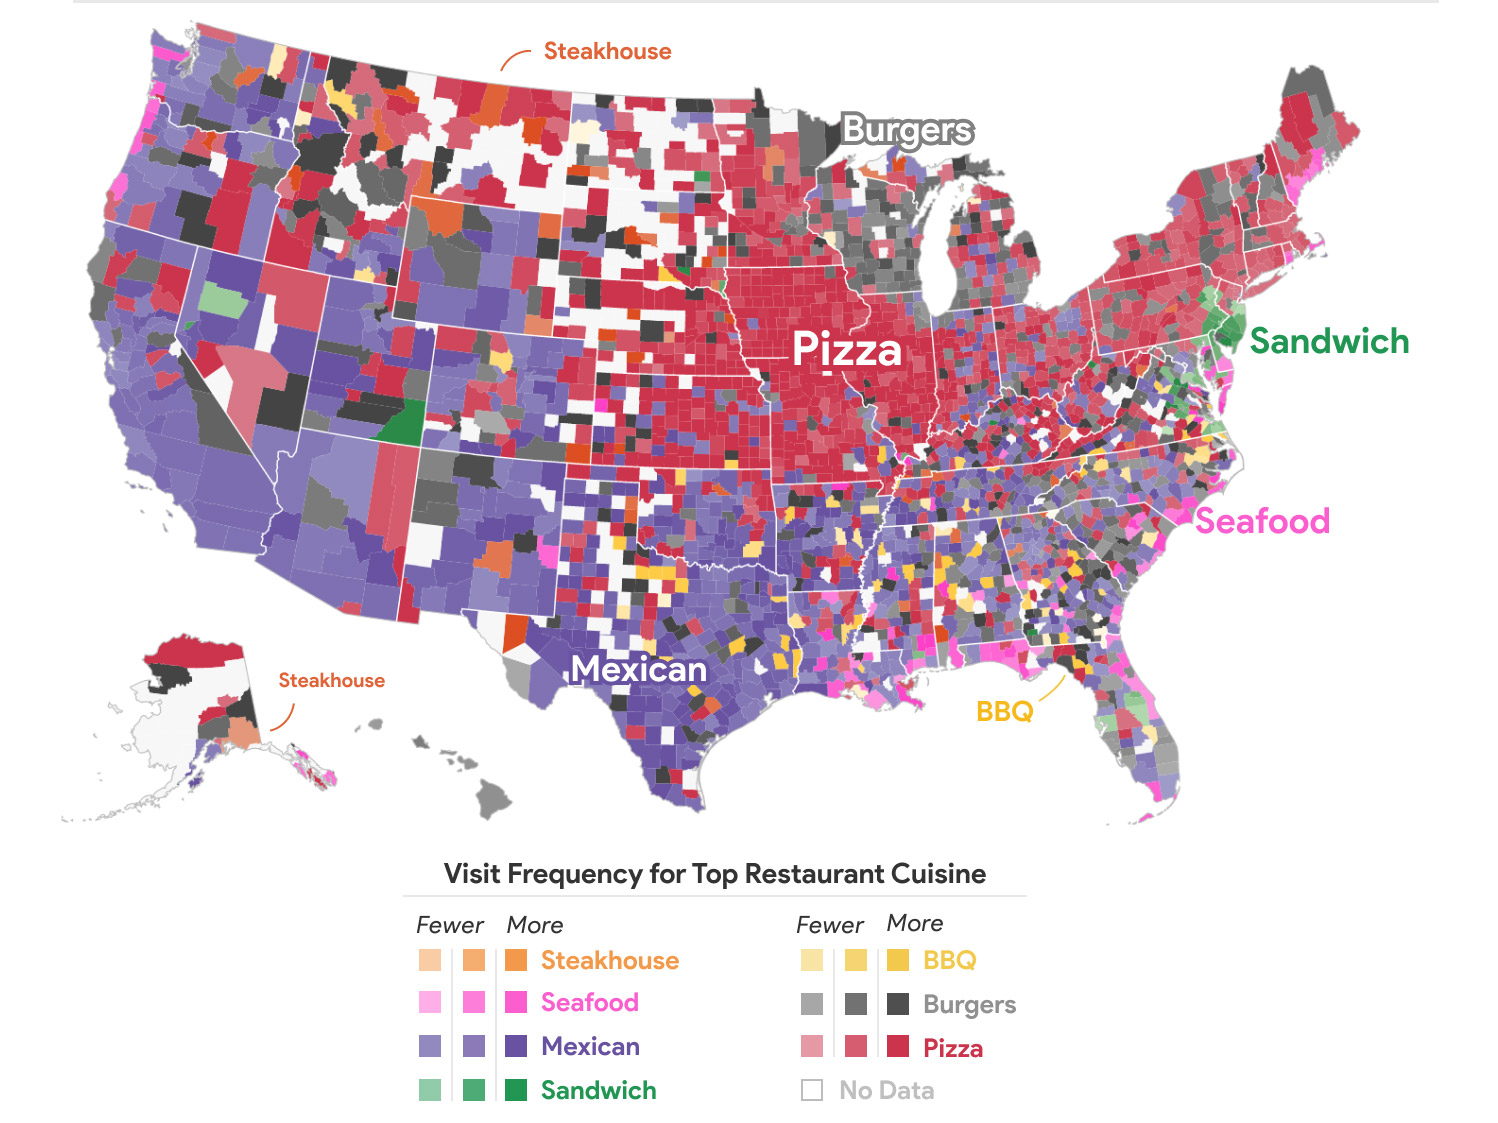 The Most Popular Cuisines by County According to Google Location Data